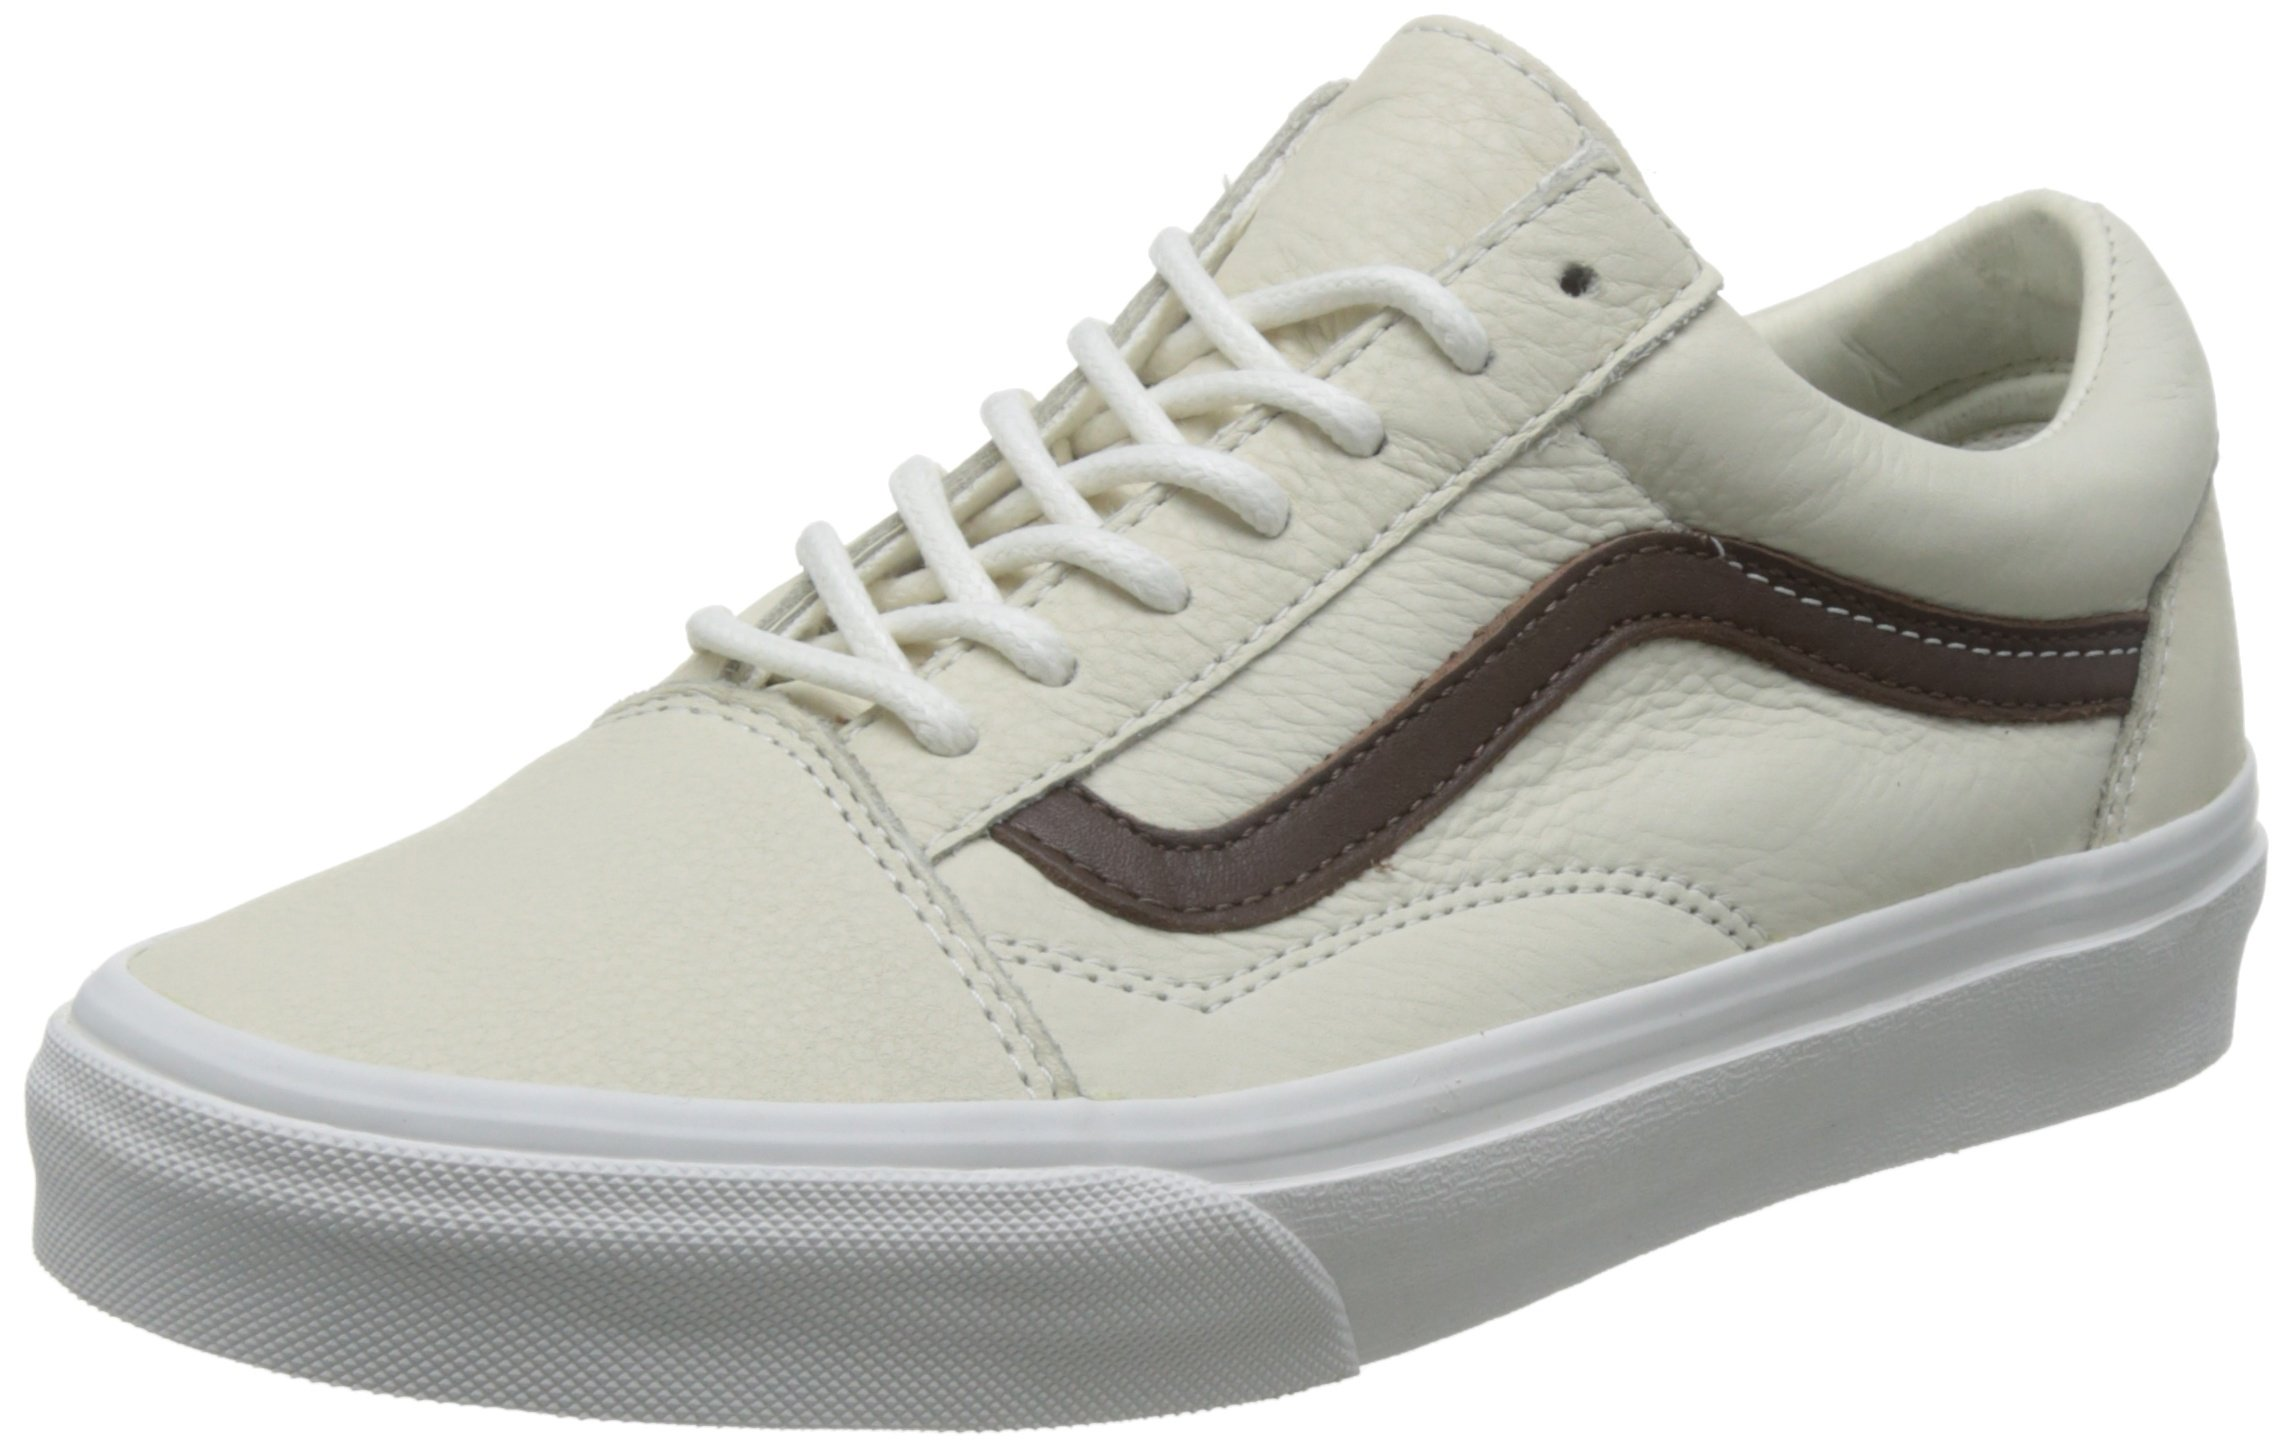 43c4a9e0b5d36d Galleon - Vans Old Skool Leather Blanc De Blanc Men s Classic Skate Shoes  Size 8